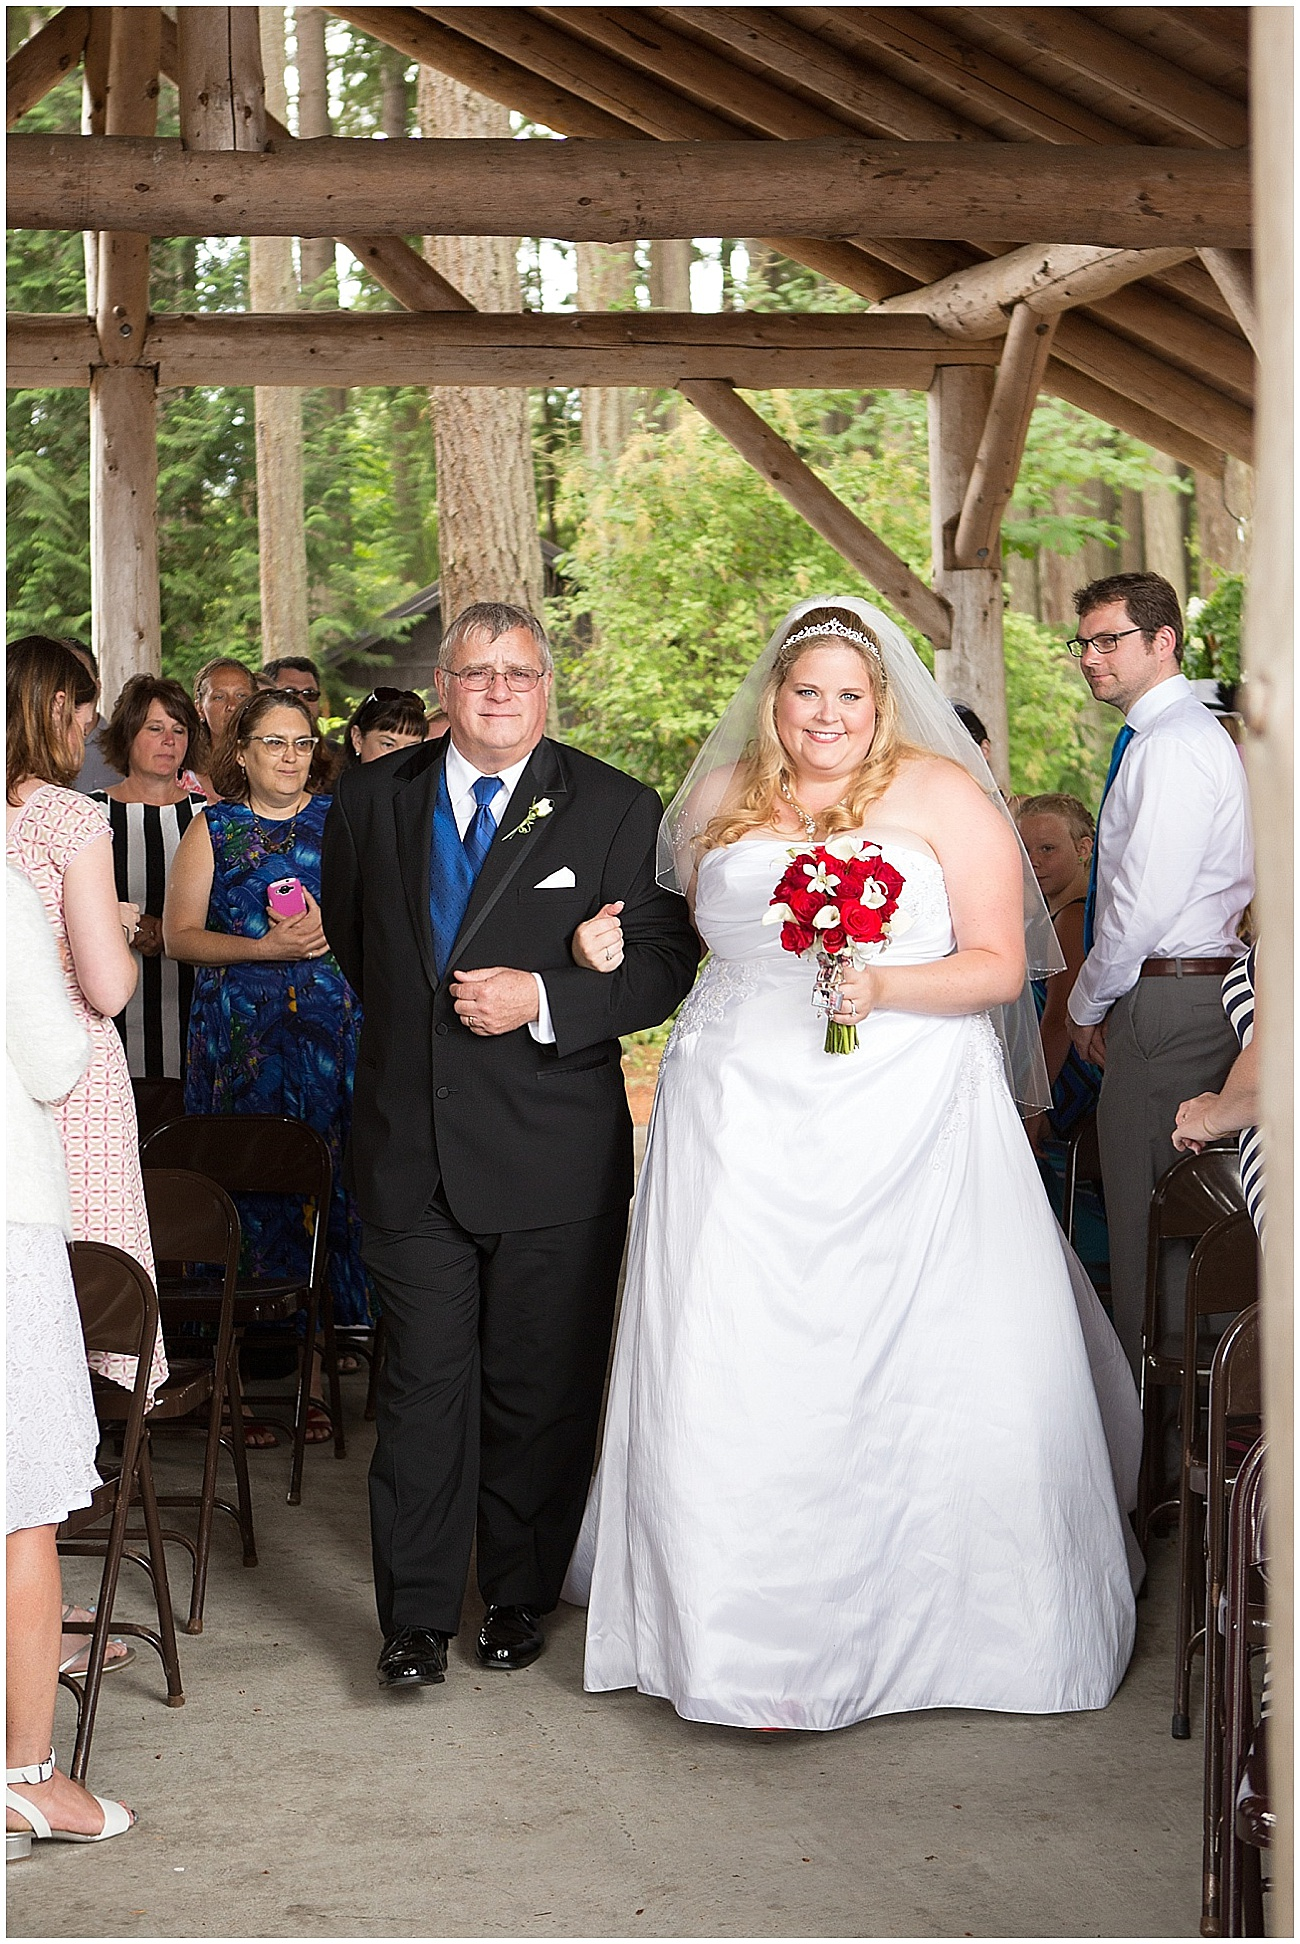 Hux_KitsapMemorialPark_Wedding_0035